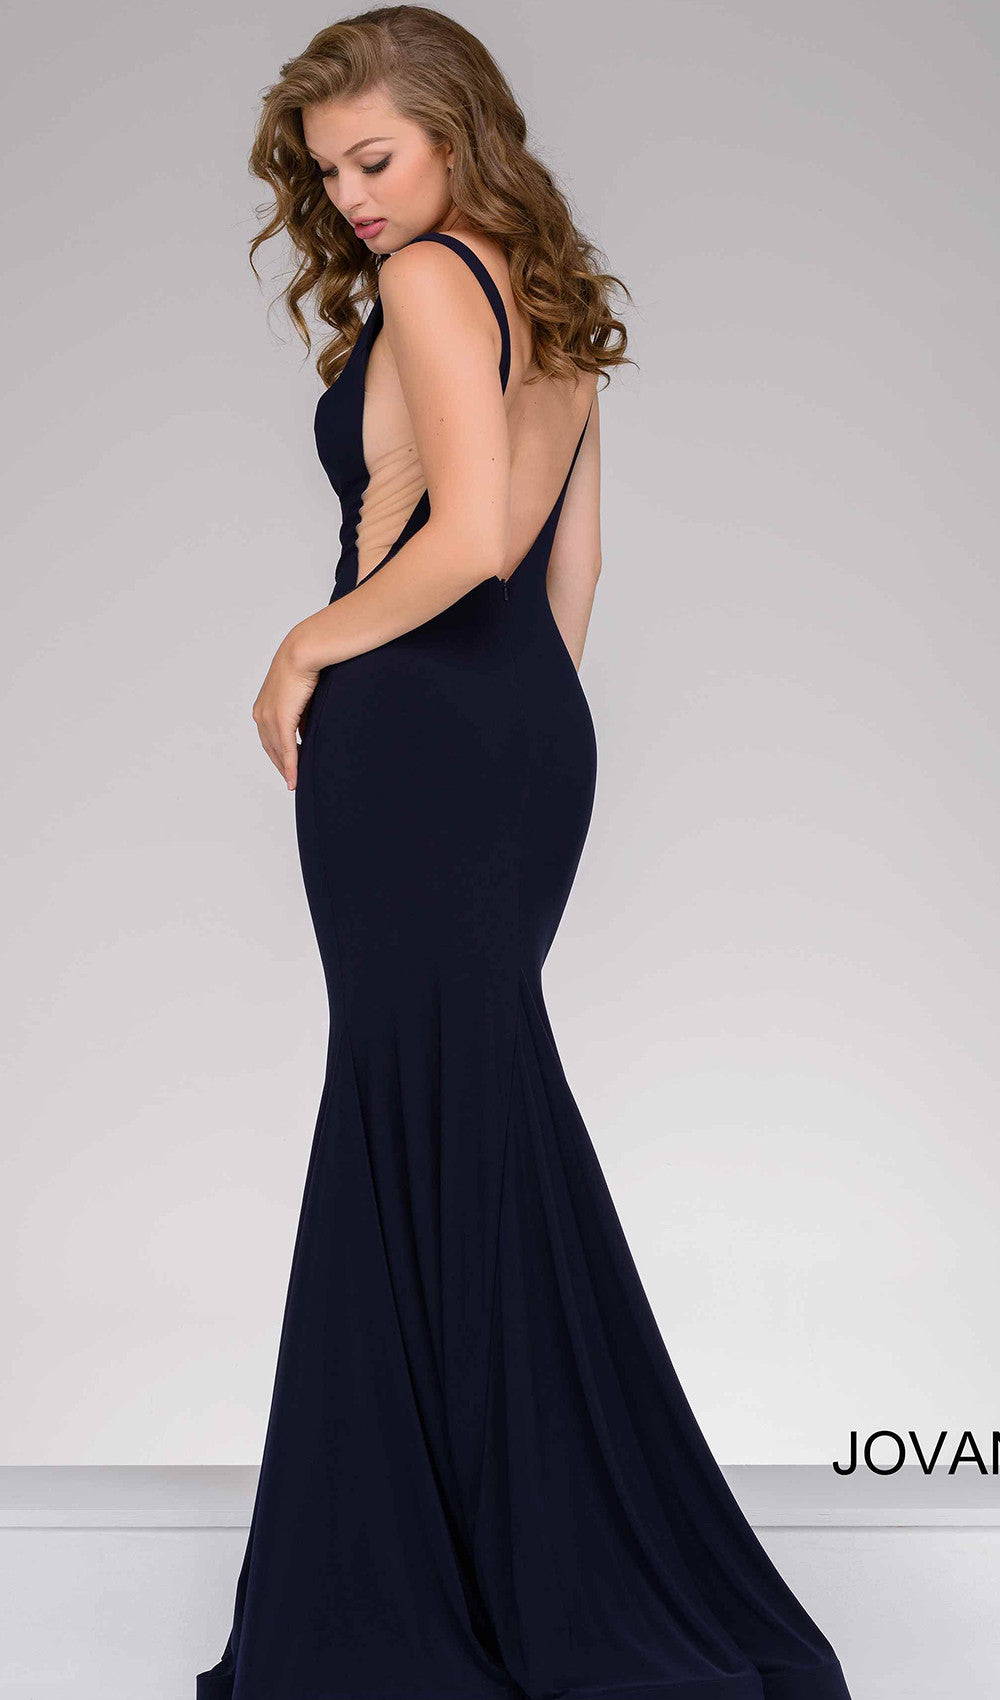 Trendy and Chic Prom Dress | Jovani - STYLE 47100 JOVANI- Schaffer's Bridal in Des Moines & Phoenix